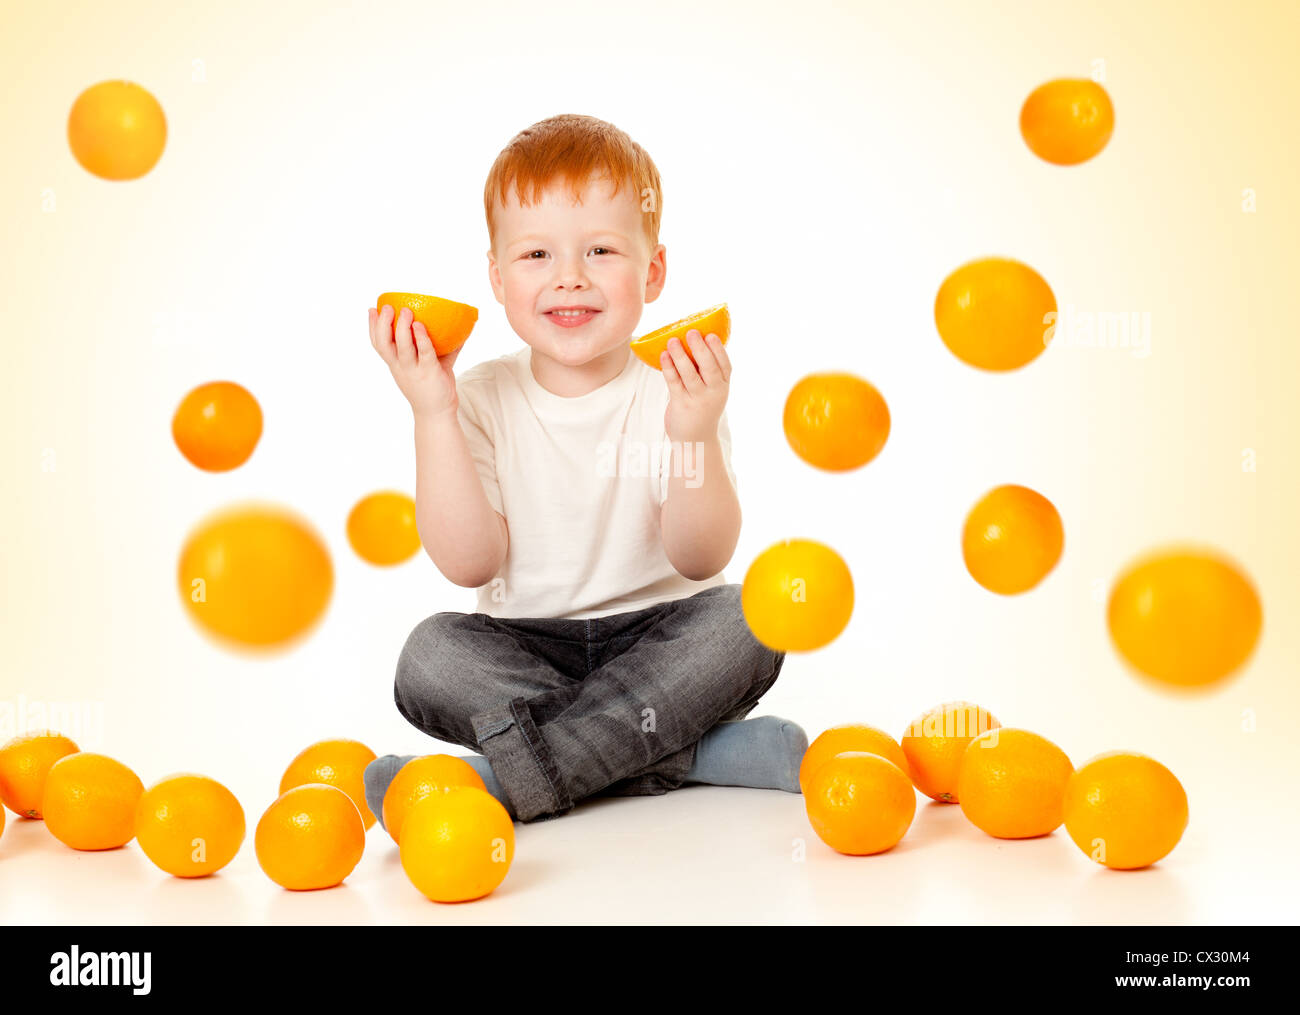 redheaded boy with falling oranges - Stock Image